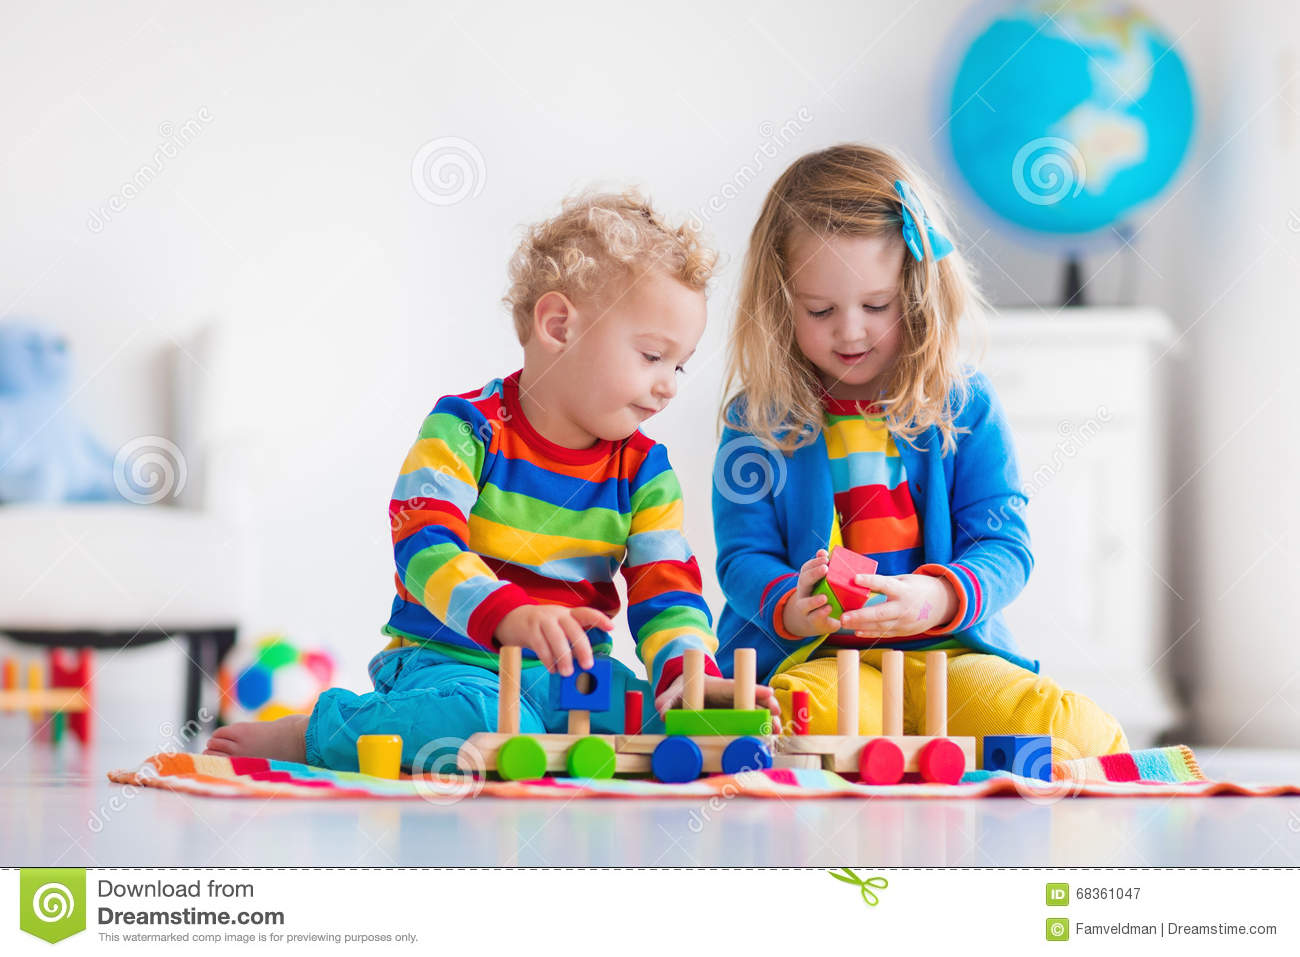 Toys At Play : Kids playing with wooden toy train stock image